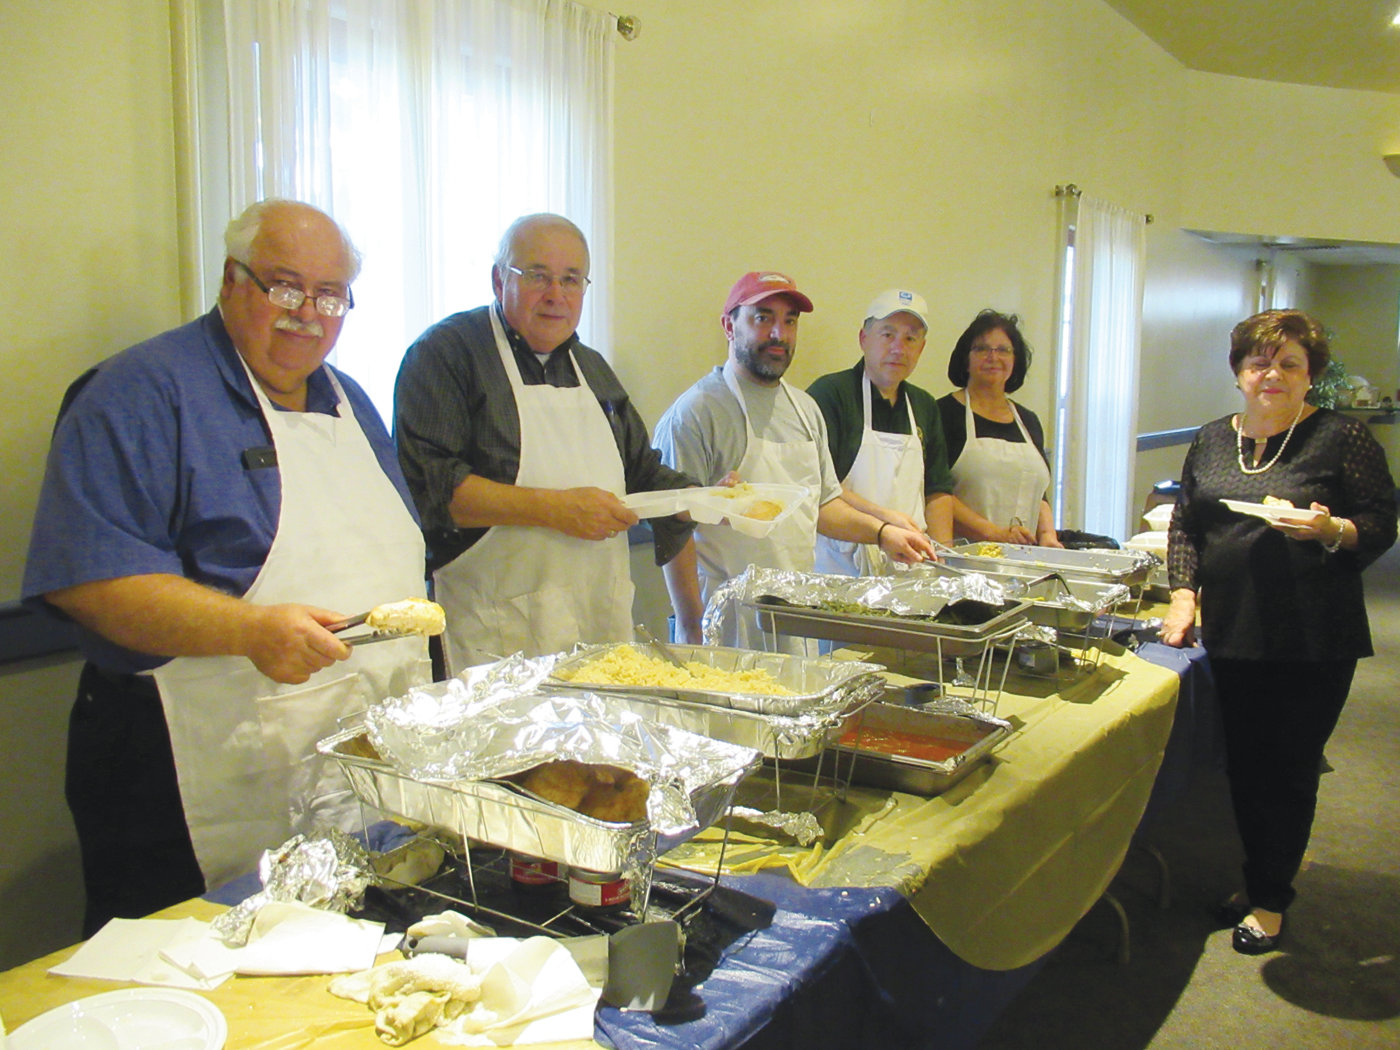 SPECIAL STAFF: Among the proud parishioners at Church of the Annunciation who prepared and served Sunday's Philoptochos Vasilopeta Luncheon are, from left, Theofanis Markos, Kevin Phelan, Jimmy Grammas, Paul Kallis and Elizabeth DeGaitis.